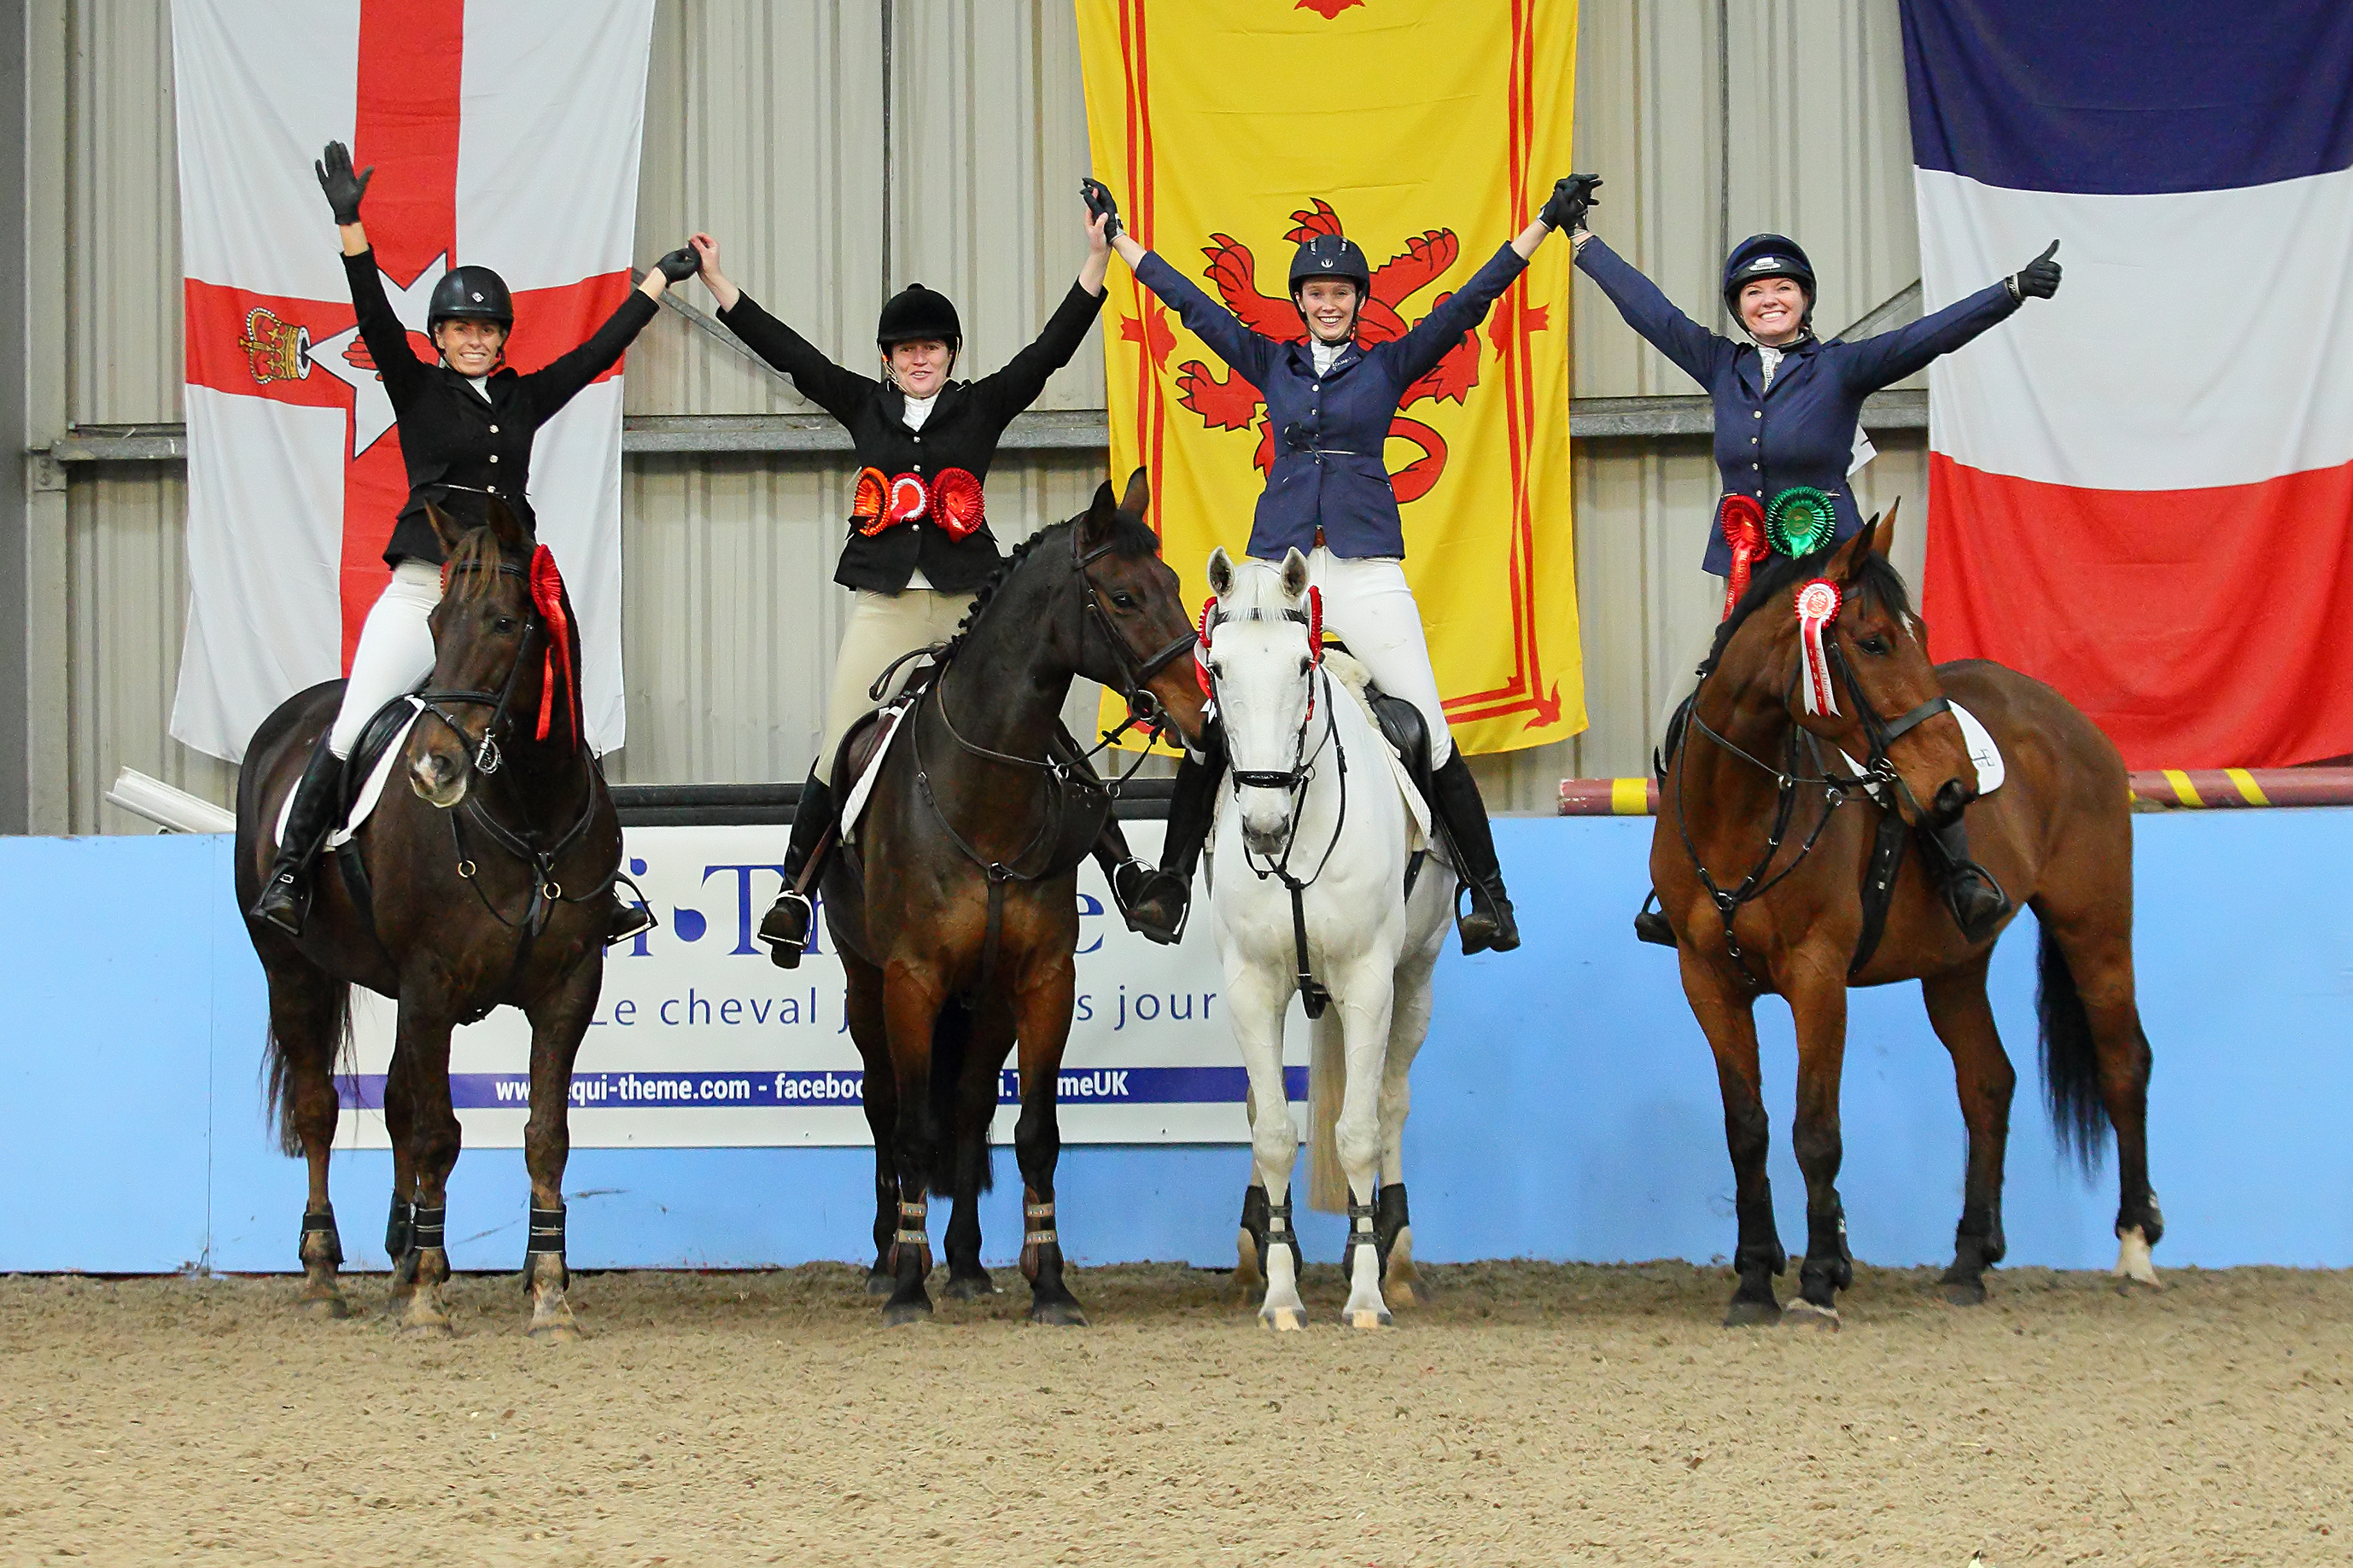 Equi-Thème Riding Clubs Intermediate Winter Championship Qualifiers Proving Popular